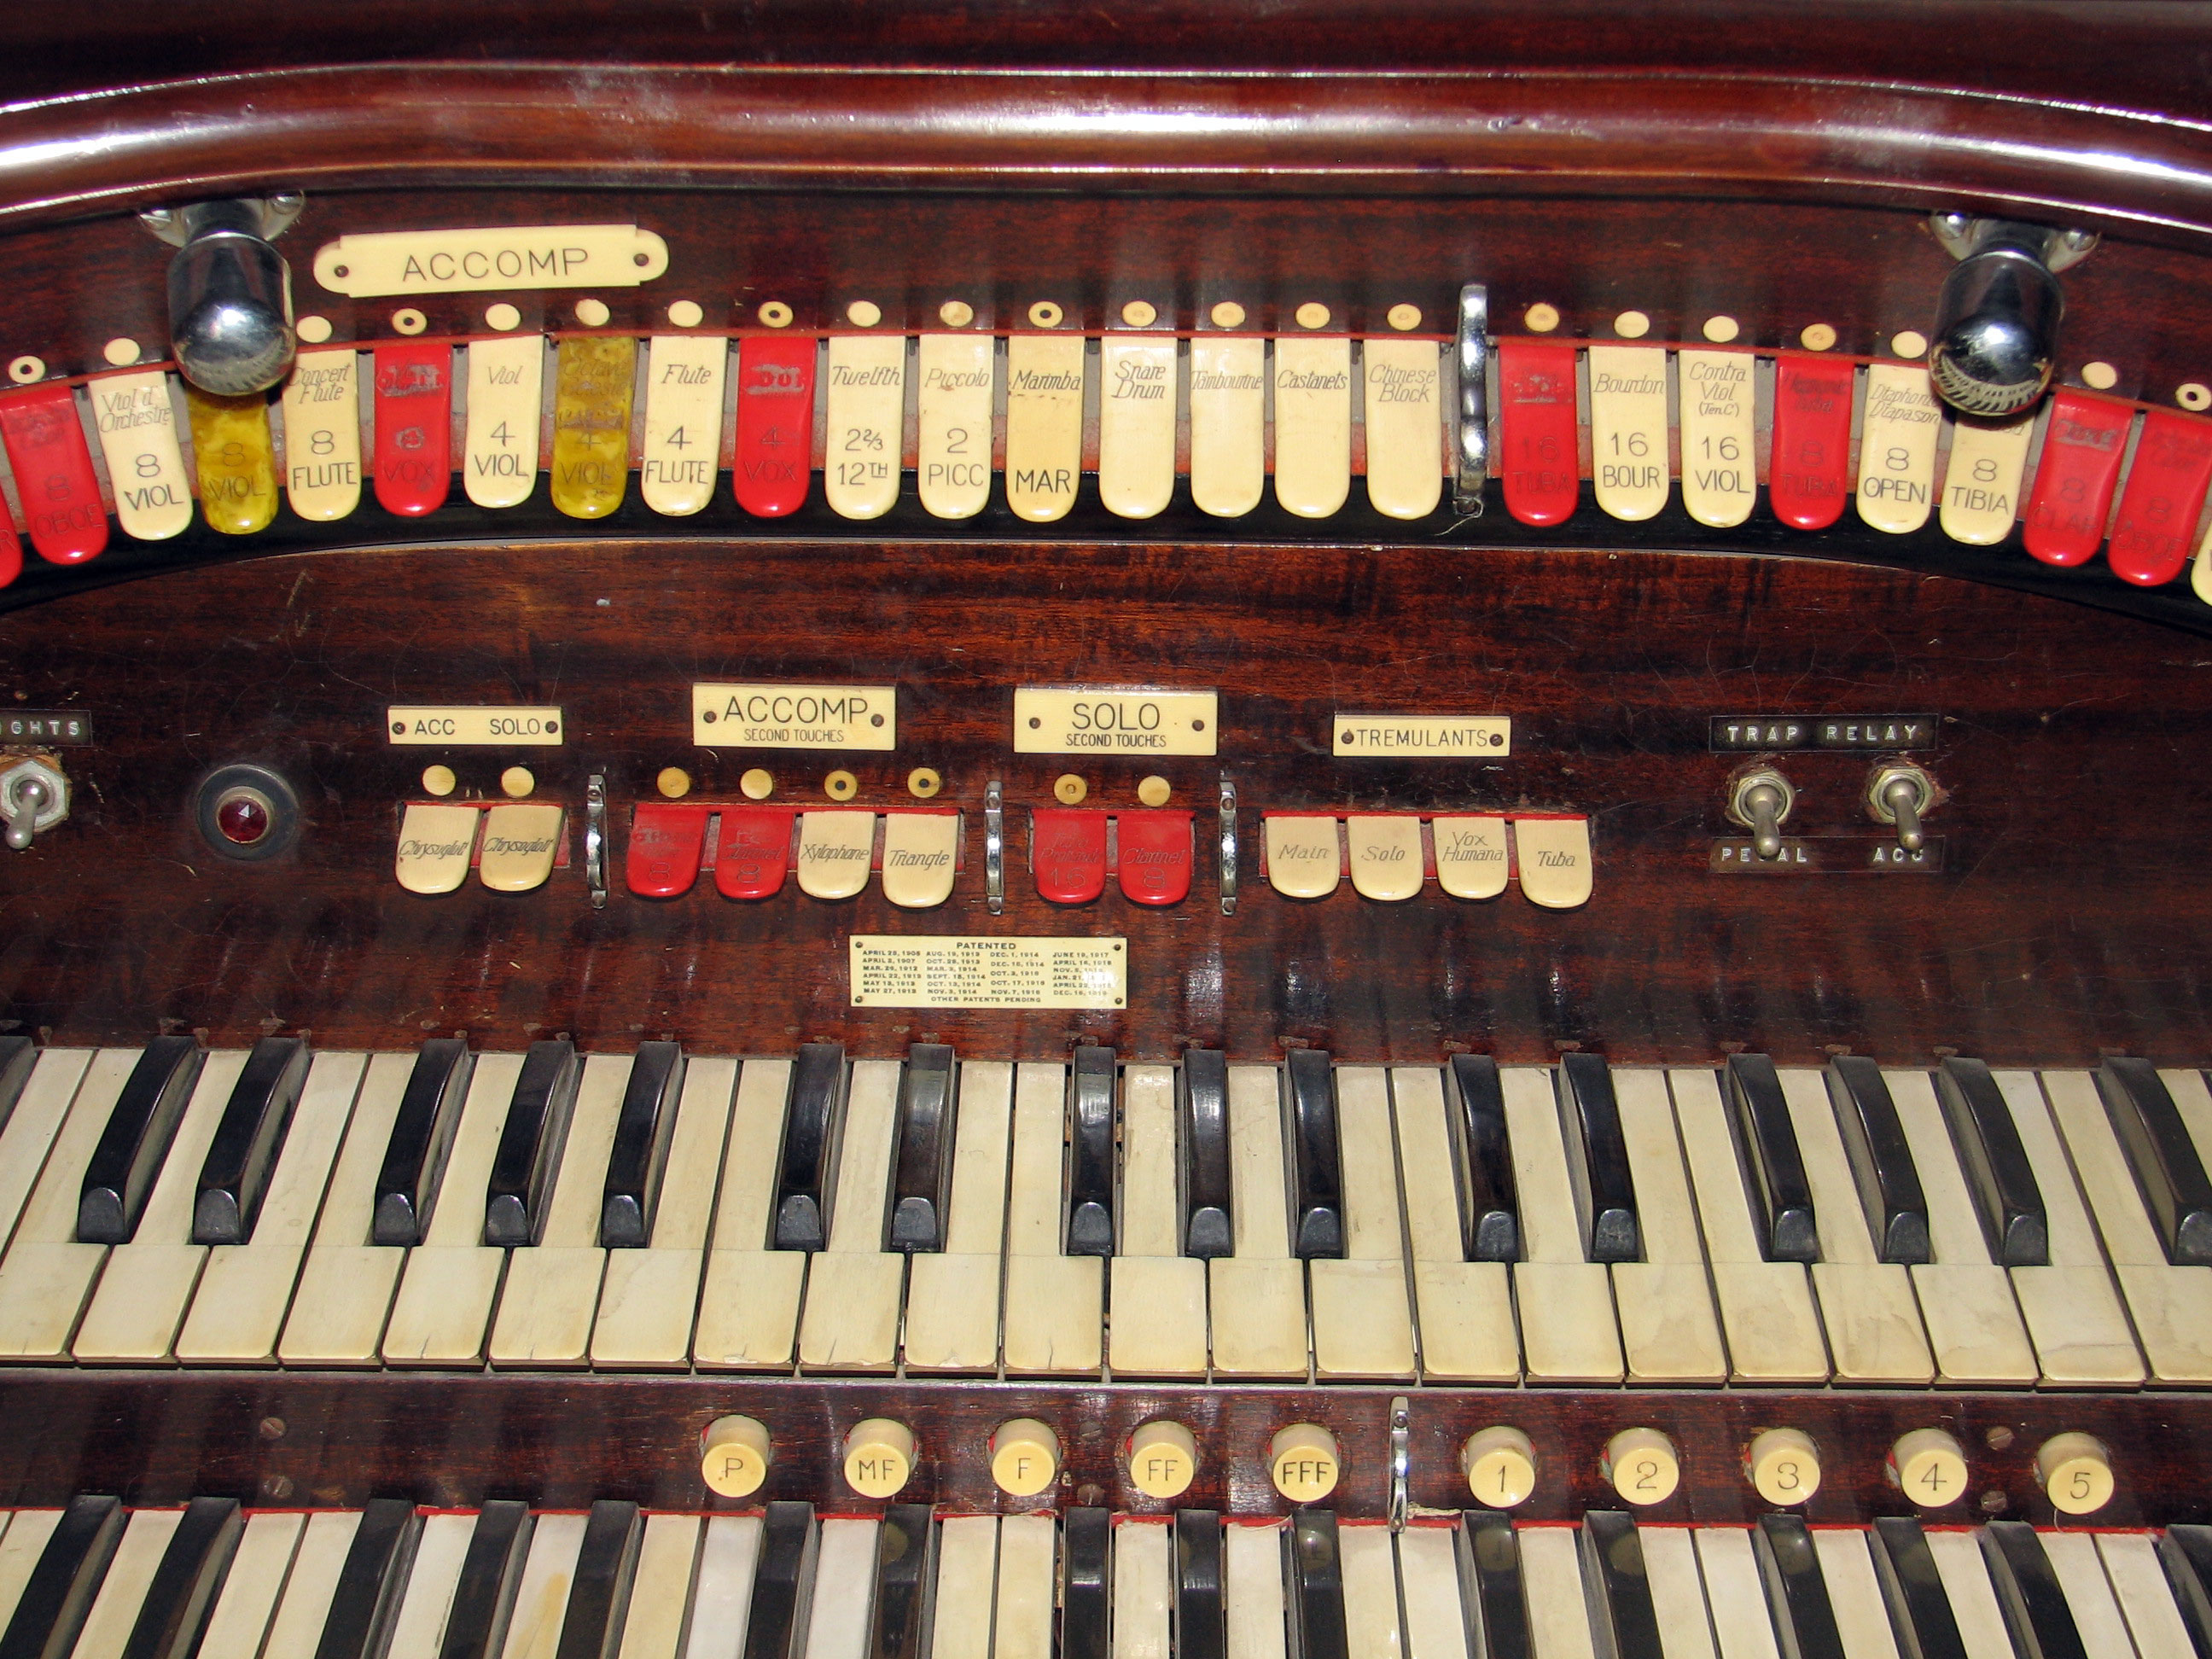 Click here to download a 2592 x 1944 JPG image showing the center bolster of the 2/9 Mighty WurliTzer Style F console.